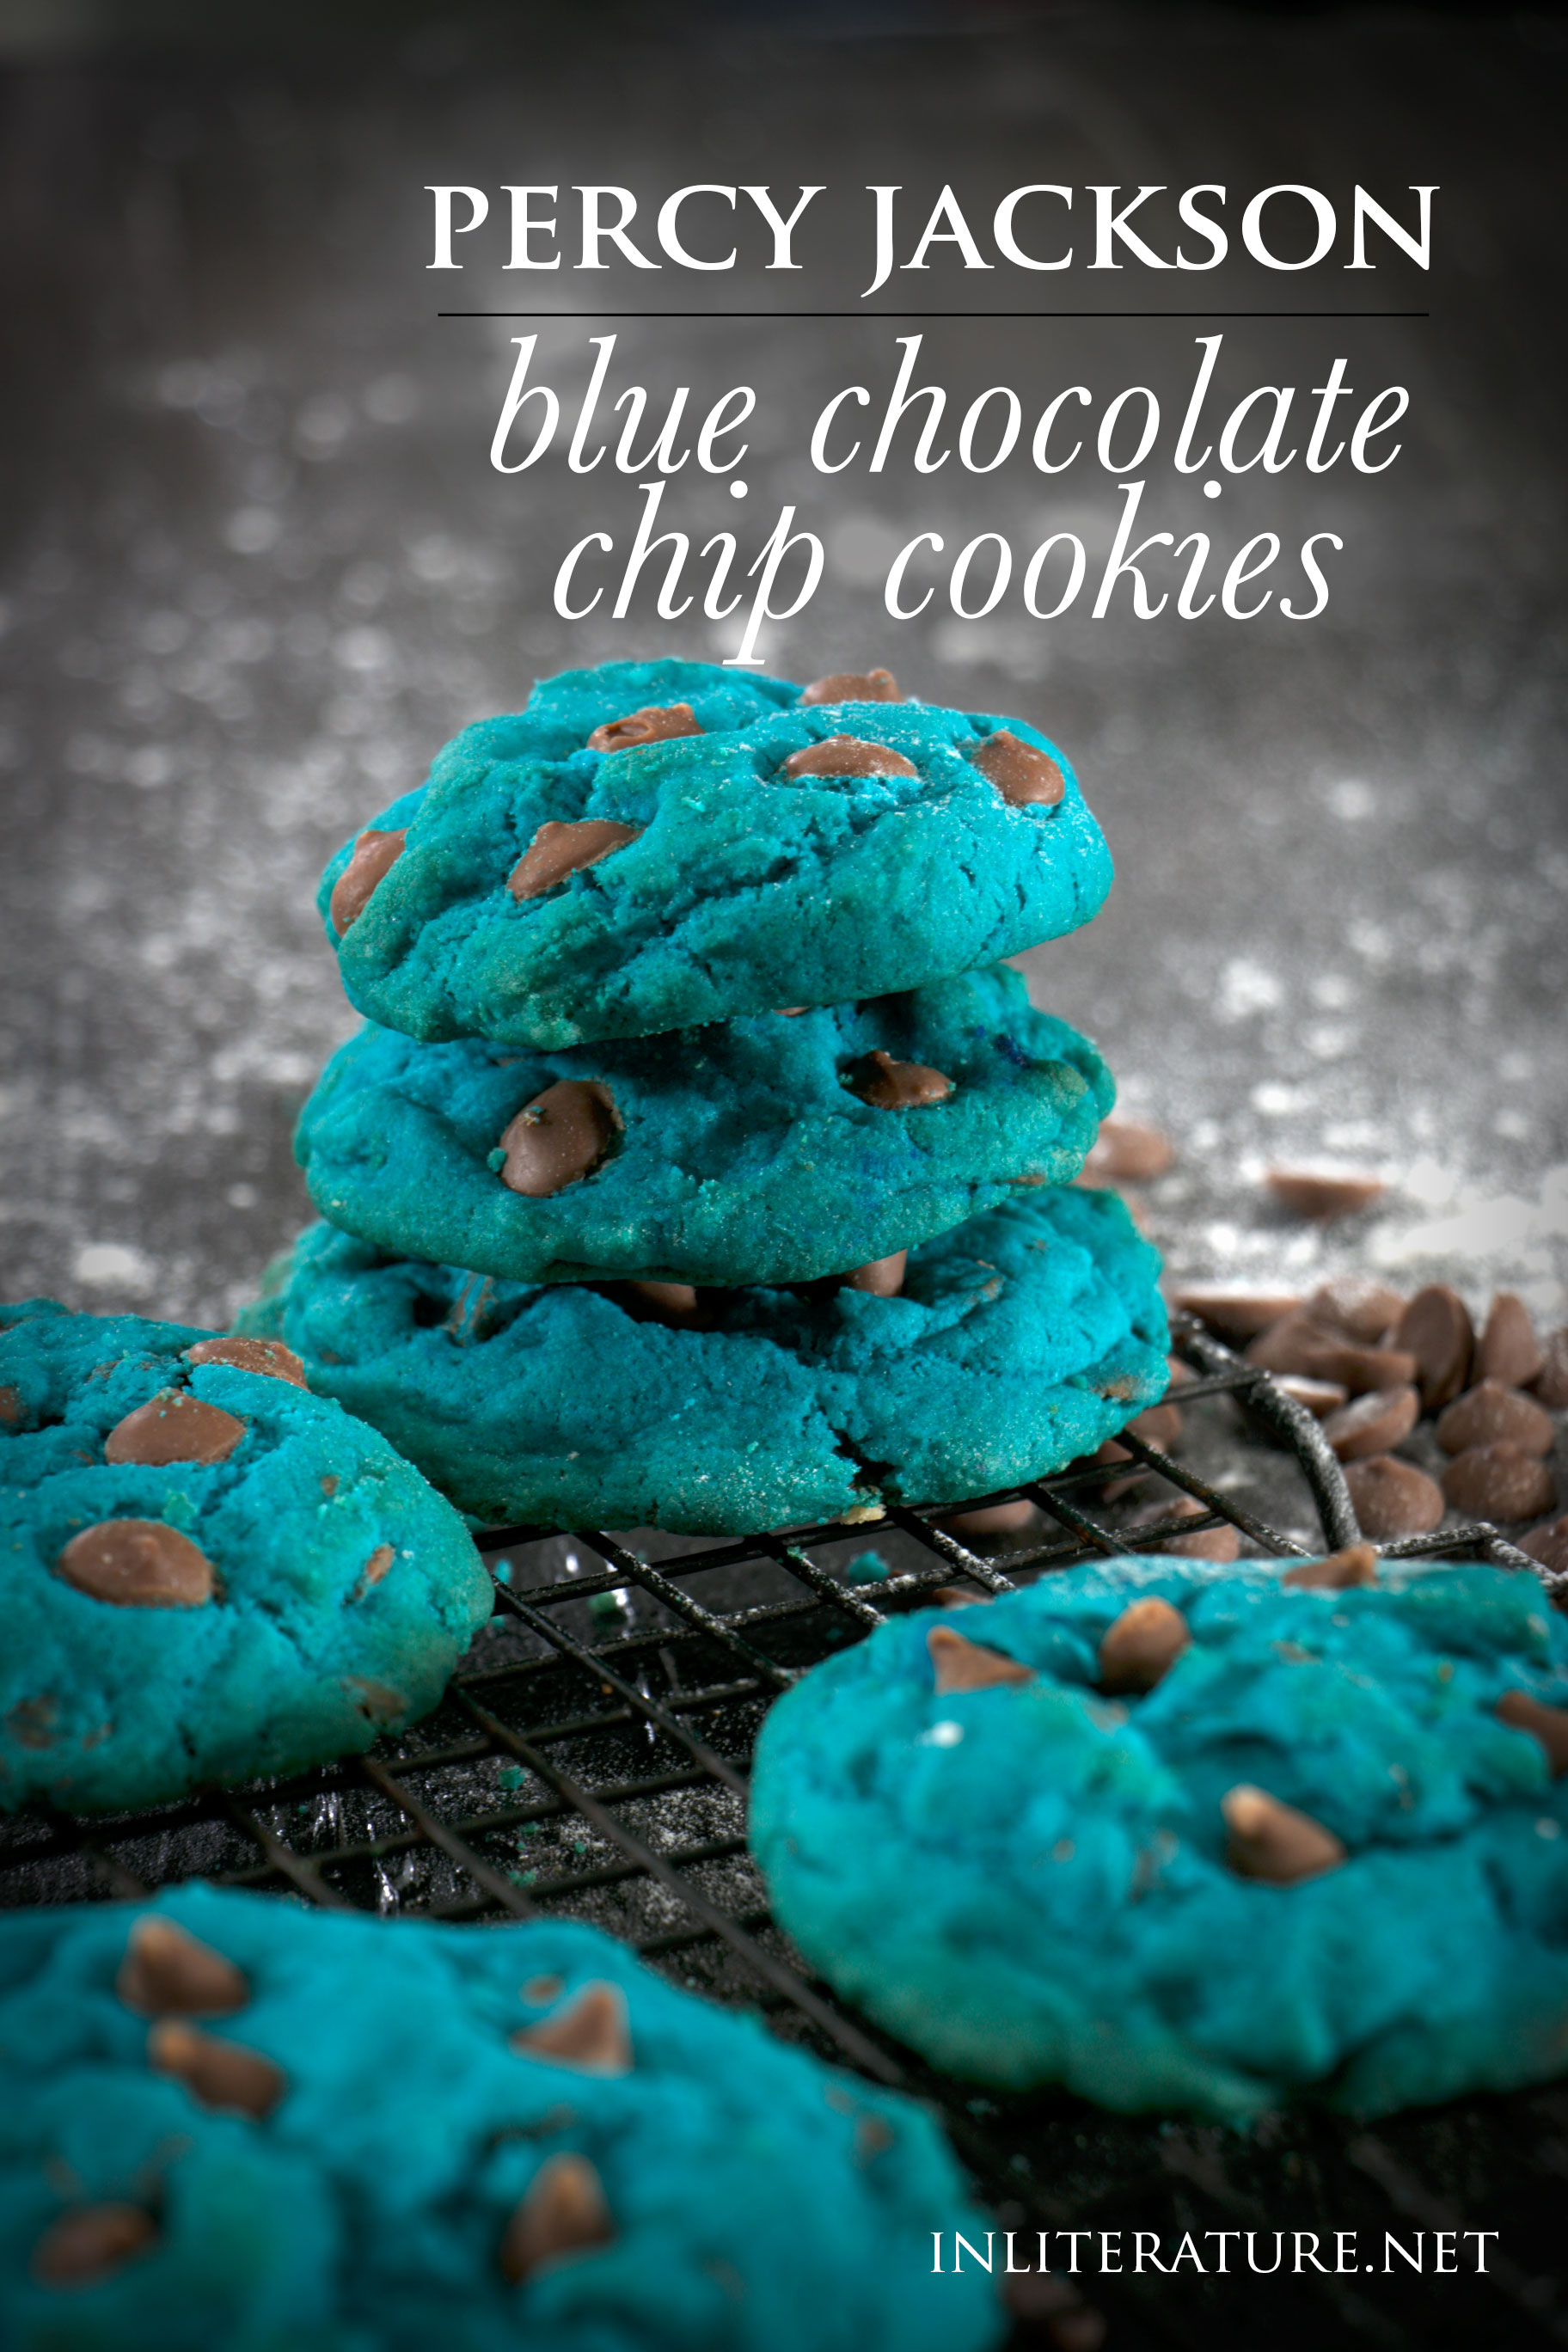 While it may not be in liquid form, these delicious blue chocolate chip cookies are what I imagine Percy Jackson's elixir to taste like. Super quick and easy to make as well!